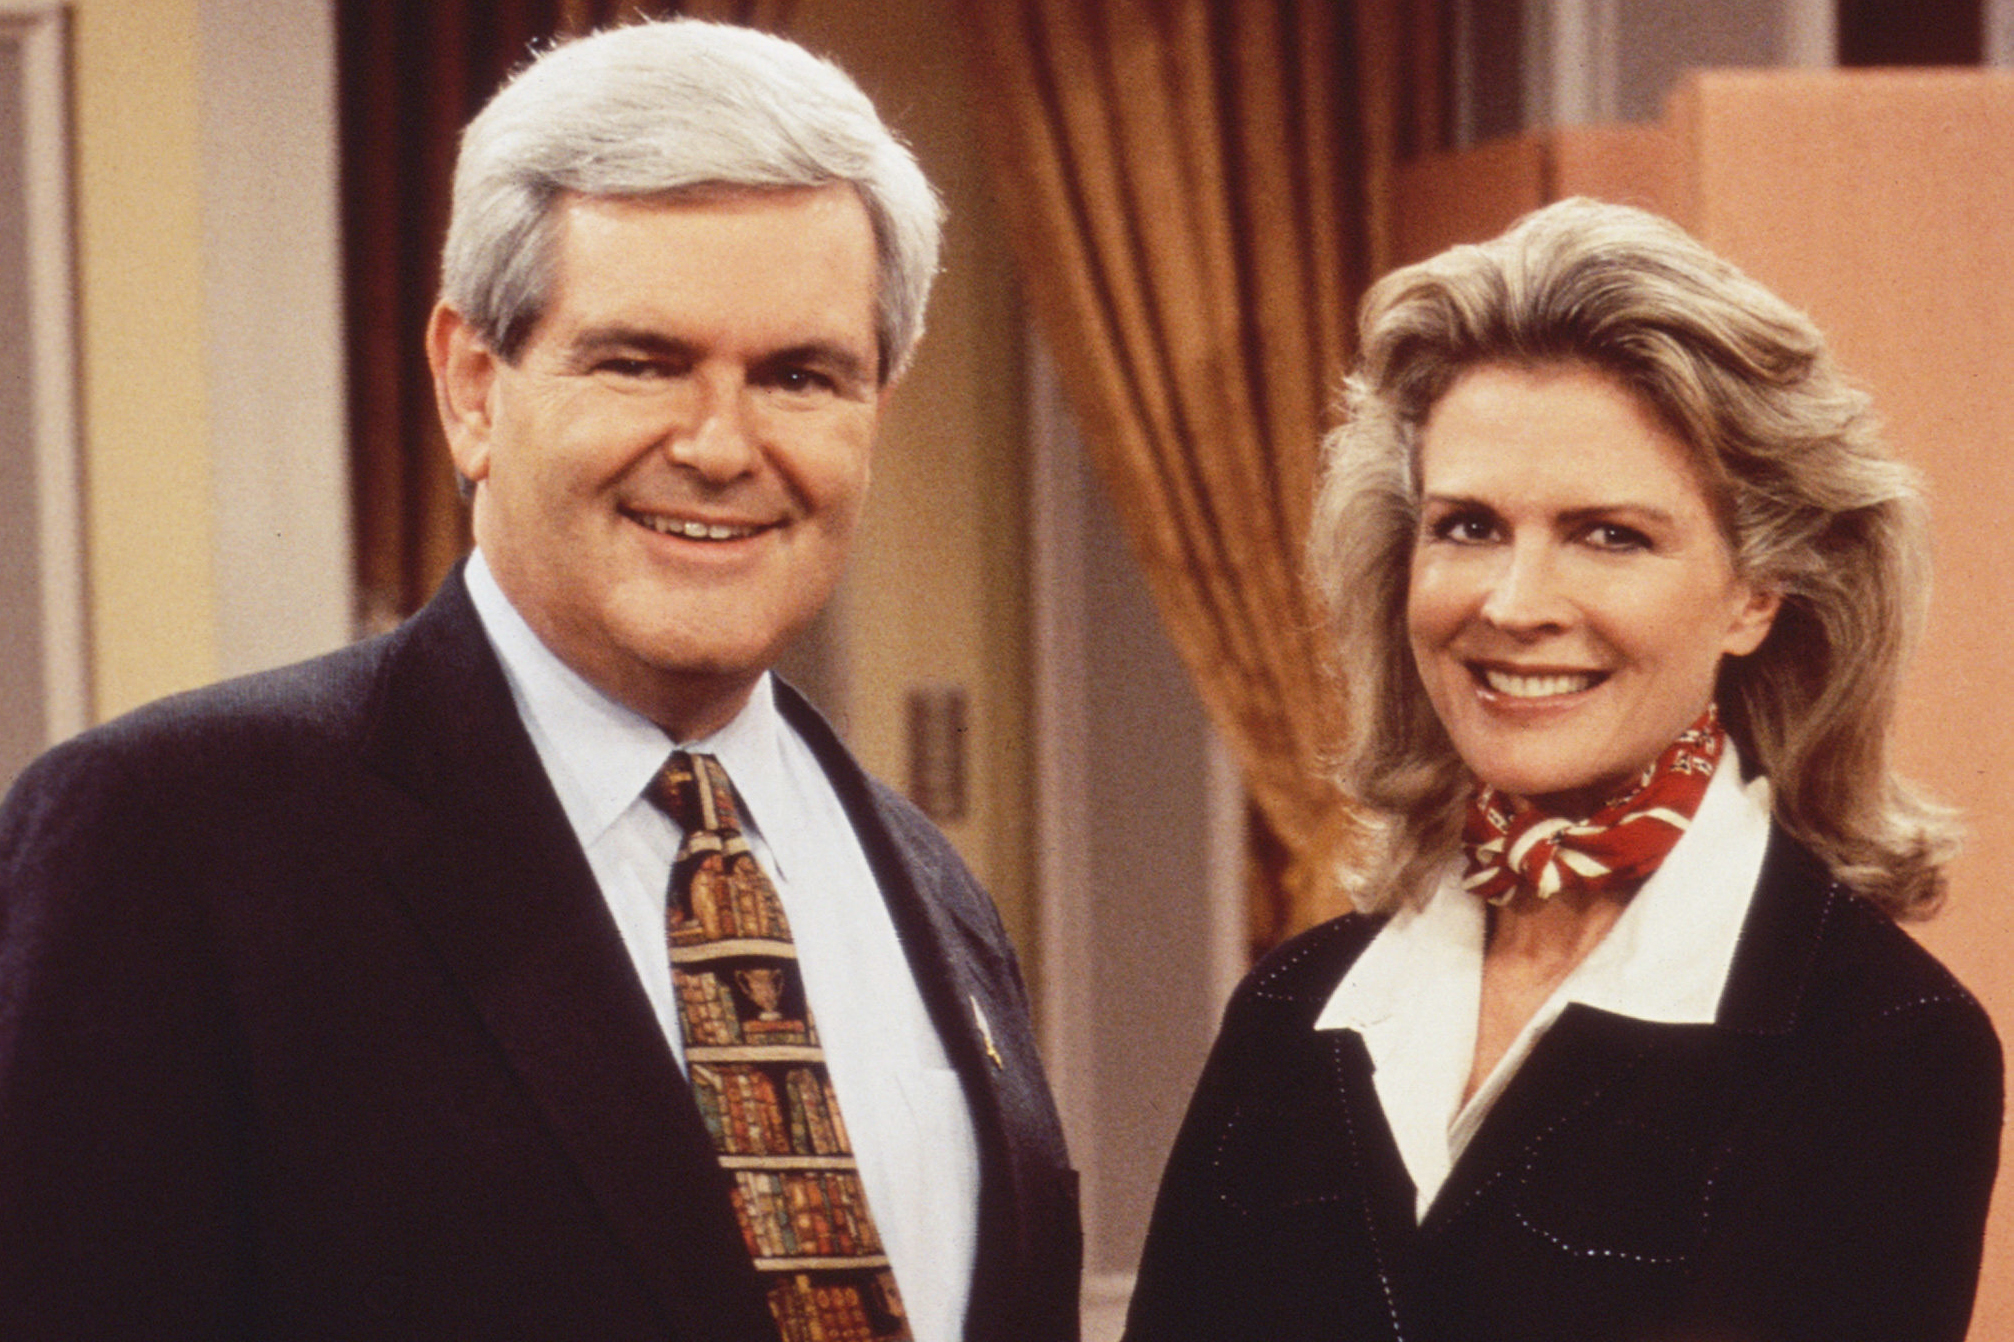 Former Speaker of the House Newt Gingrich and Candice Bergen on Murphy Brown, 1996.